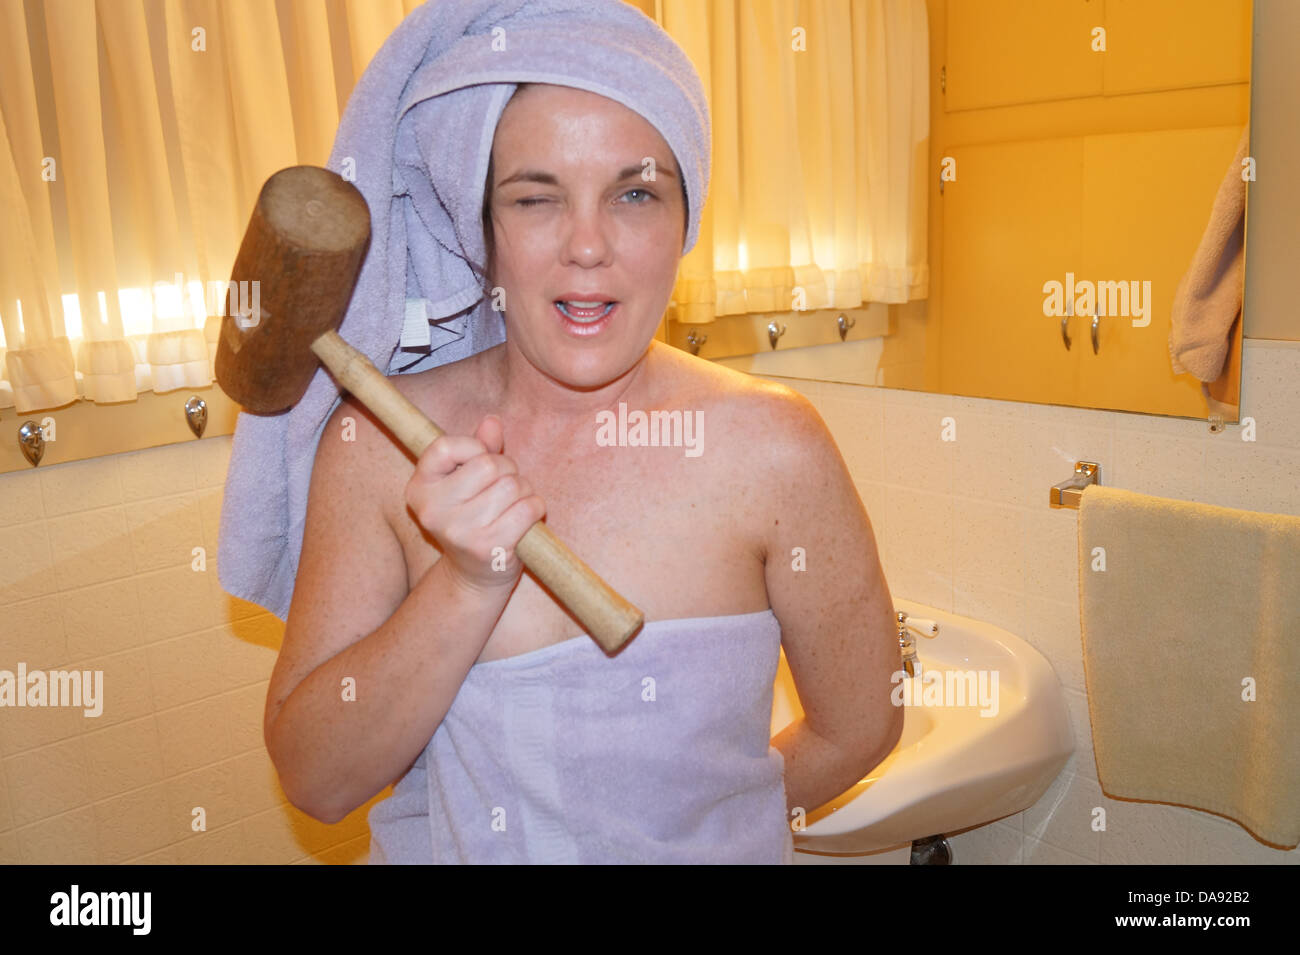 Woman remodeling her bathroom. - Stock Image